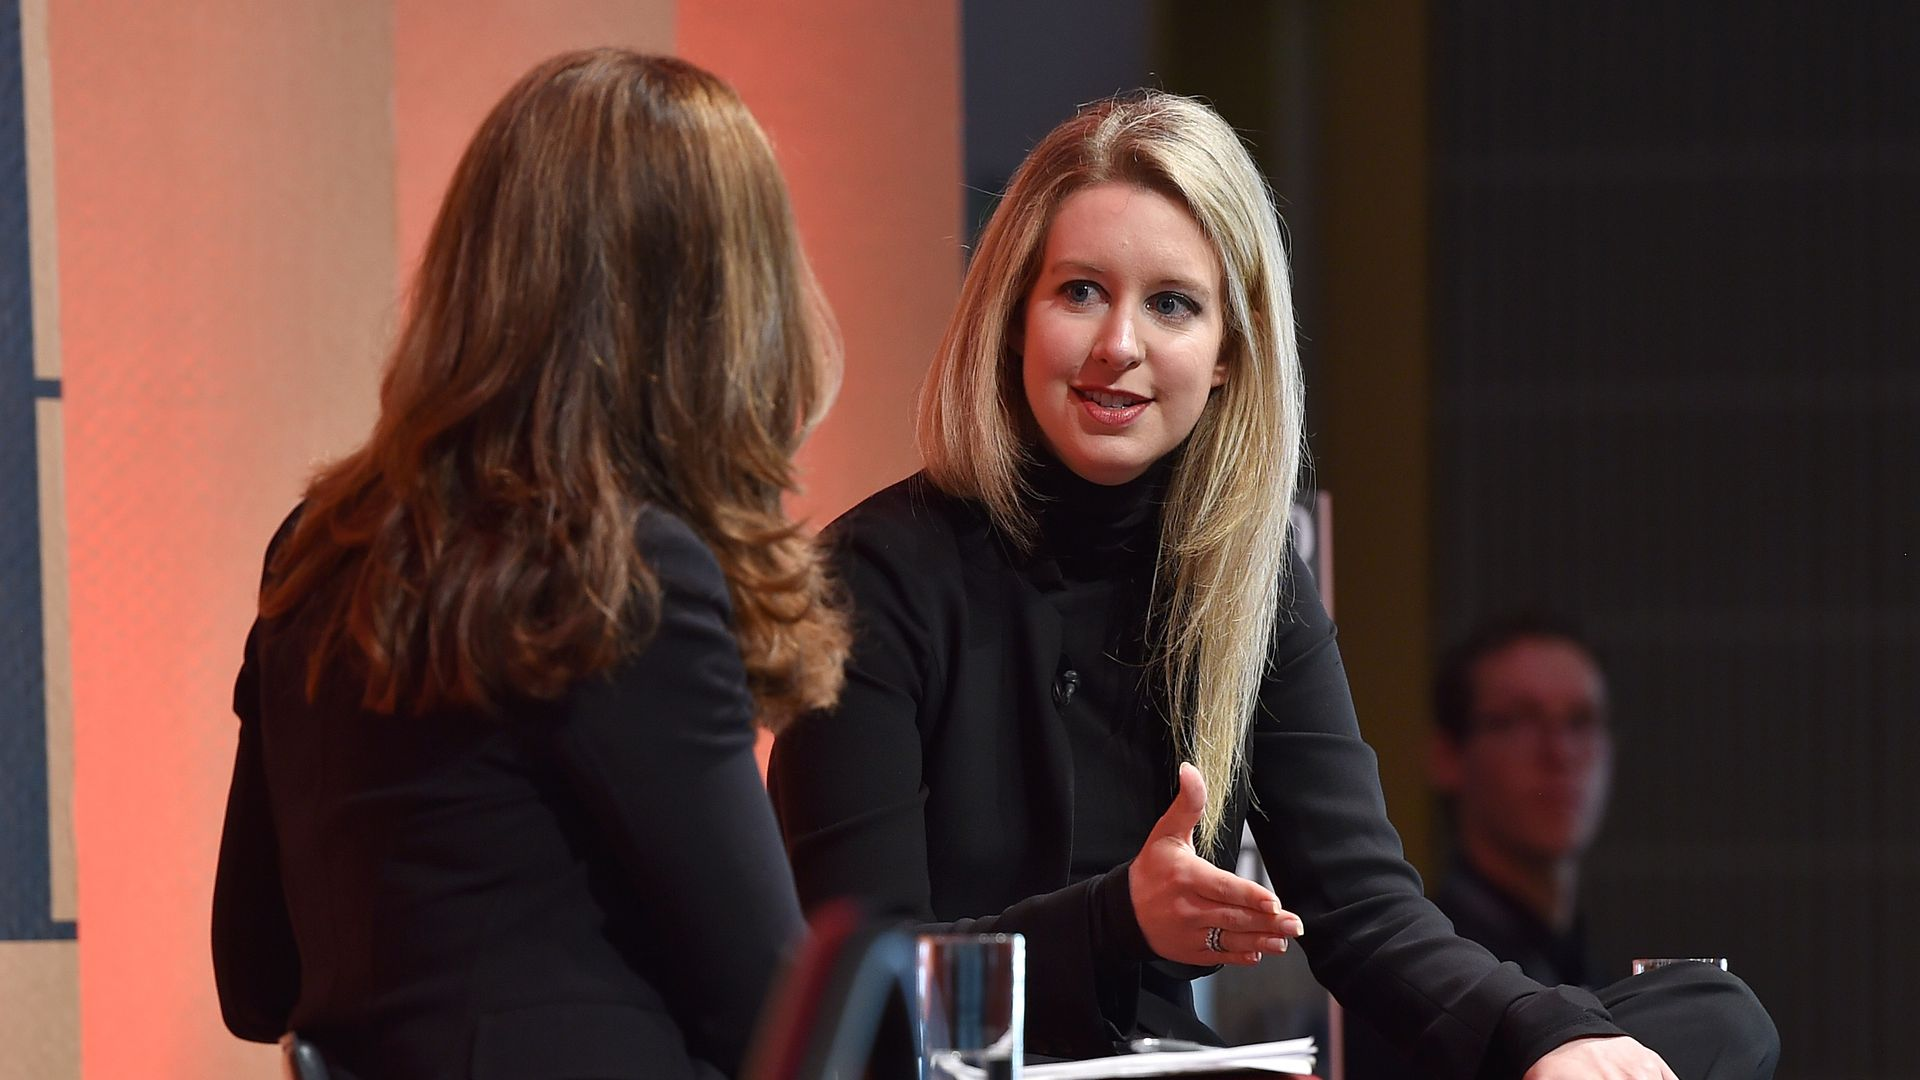 Theranos Founder and CEO Elizabeth Holmes speaks on stage in a black turtleneck.